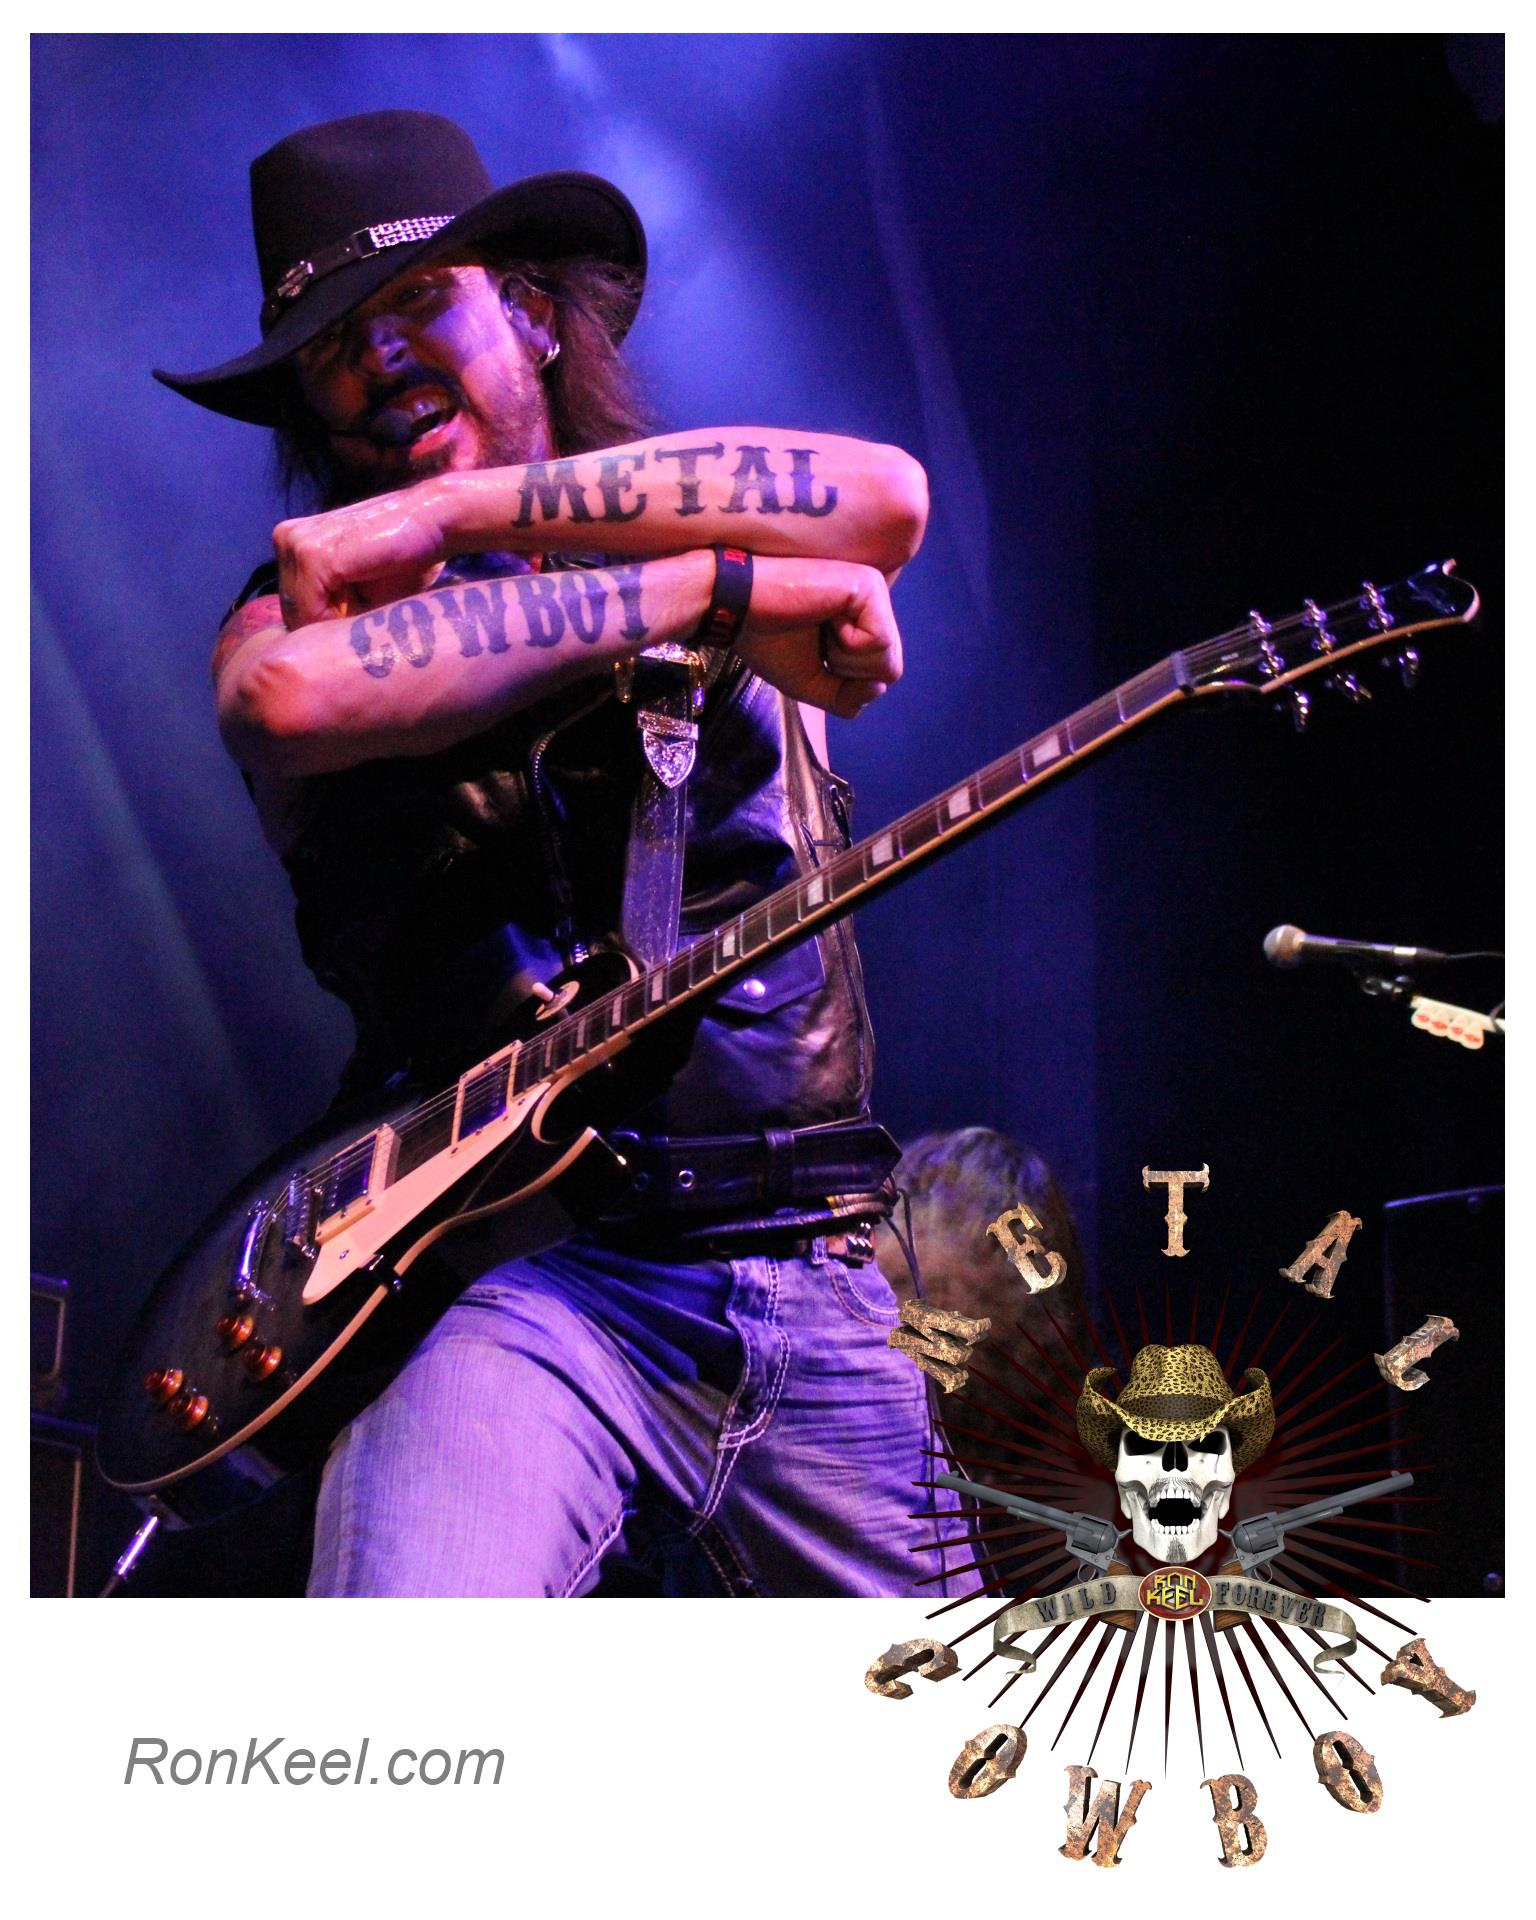 Metal Cowboy Tattoo With Ron Keel